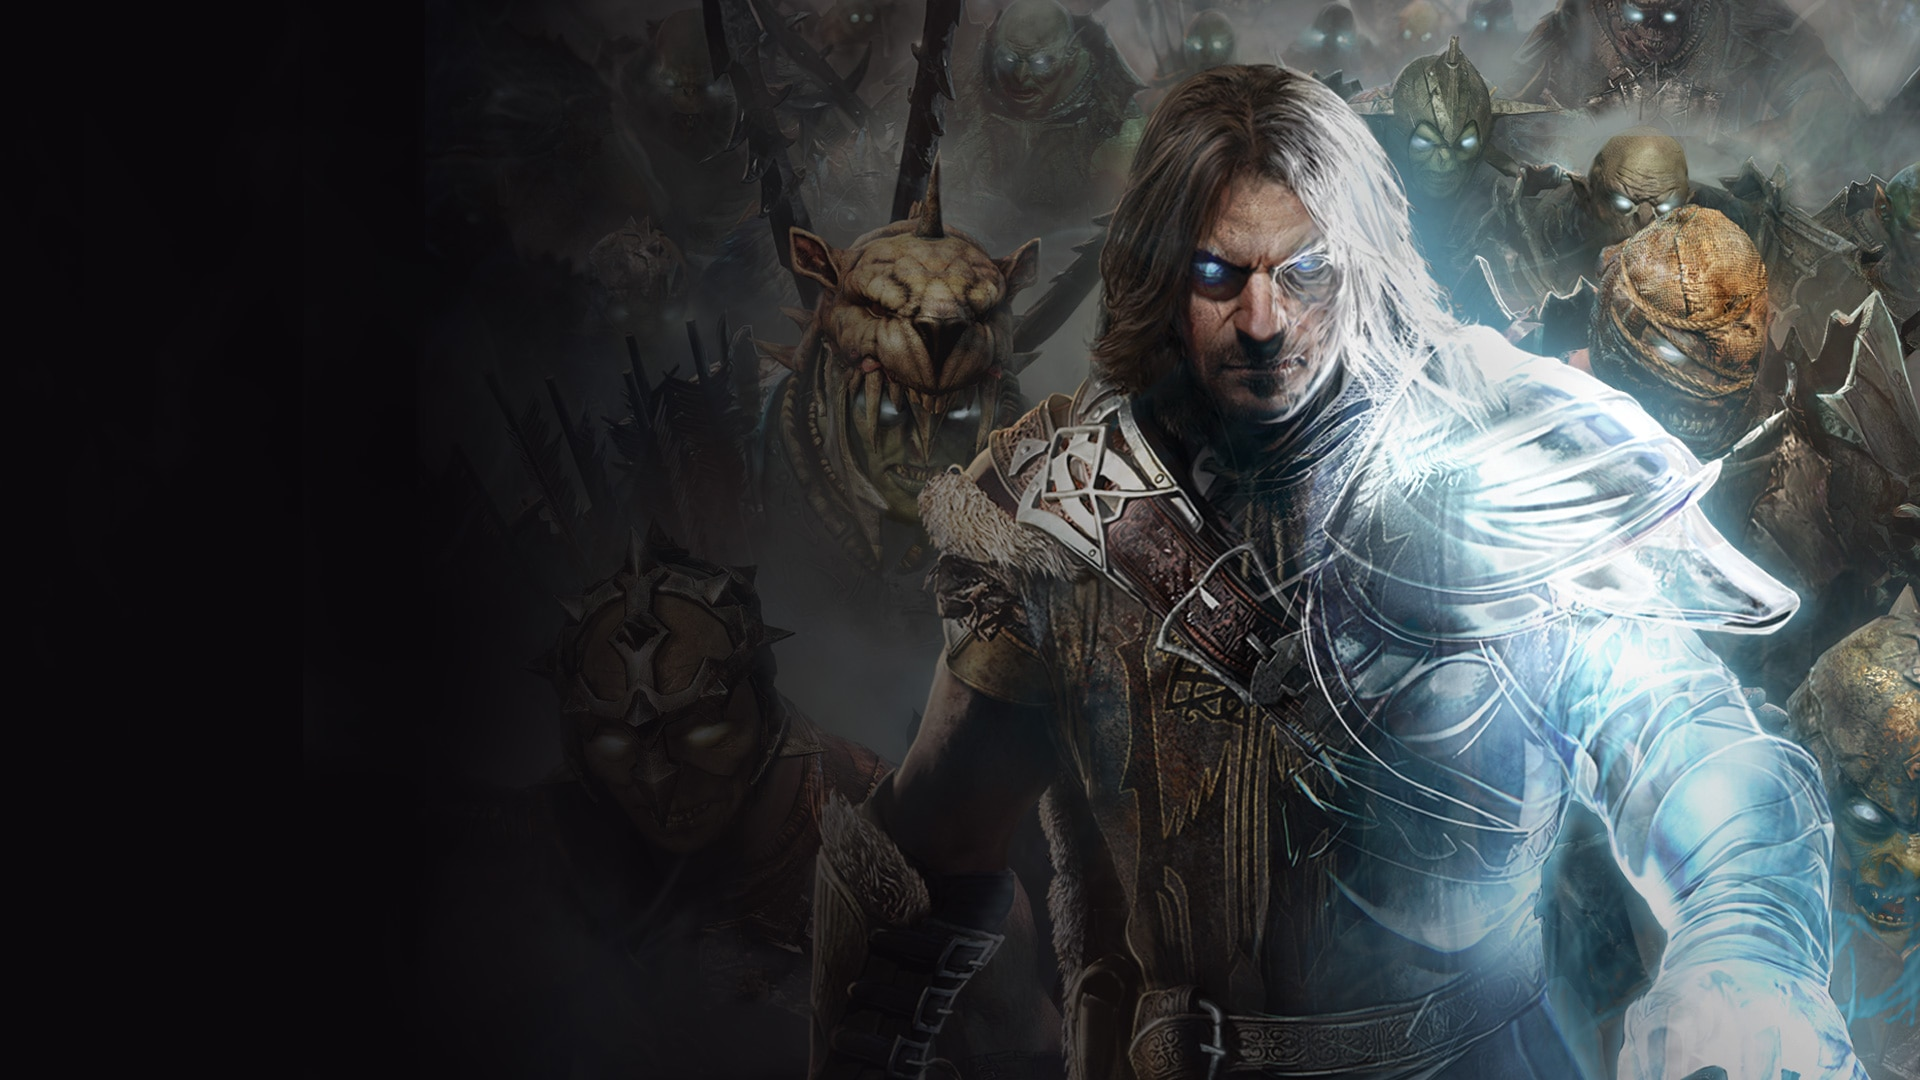 Middle-earth&lrm™: Shadow of Mordor&lrm™ Legion Edition